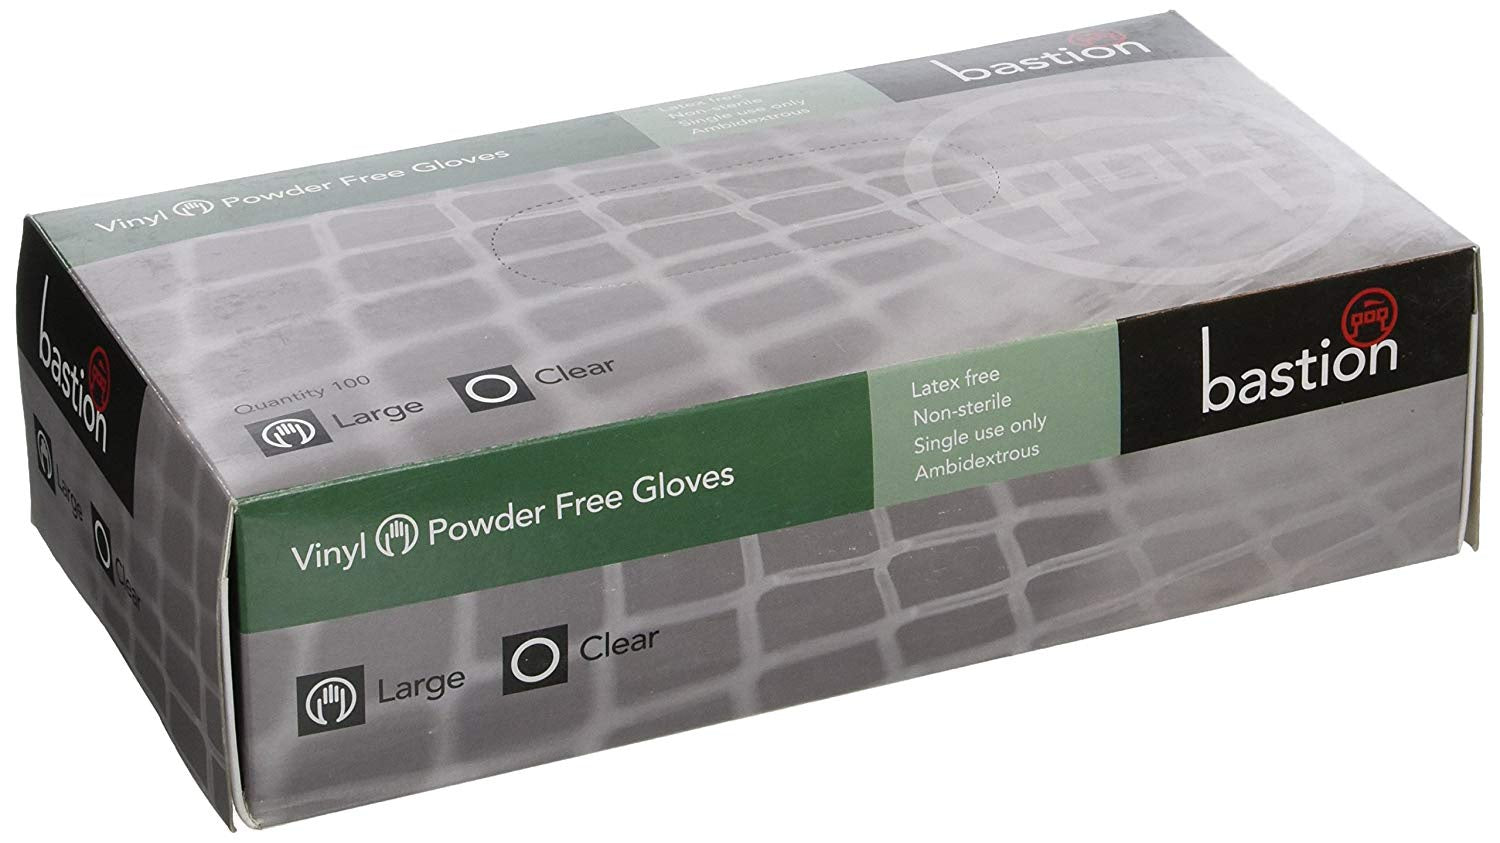 Bastion Gloves Vinyl Powder Free Clear Large 100Pk